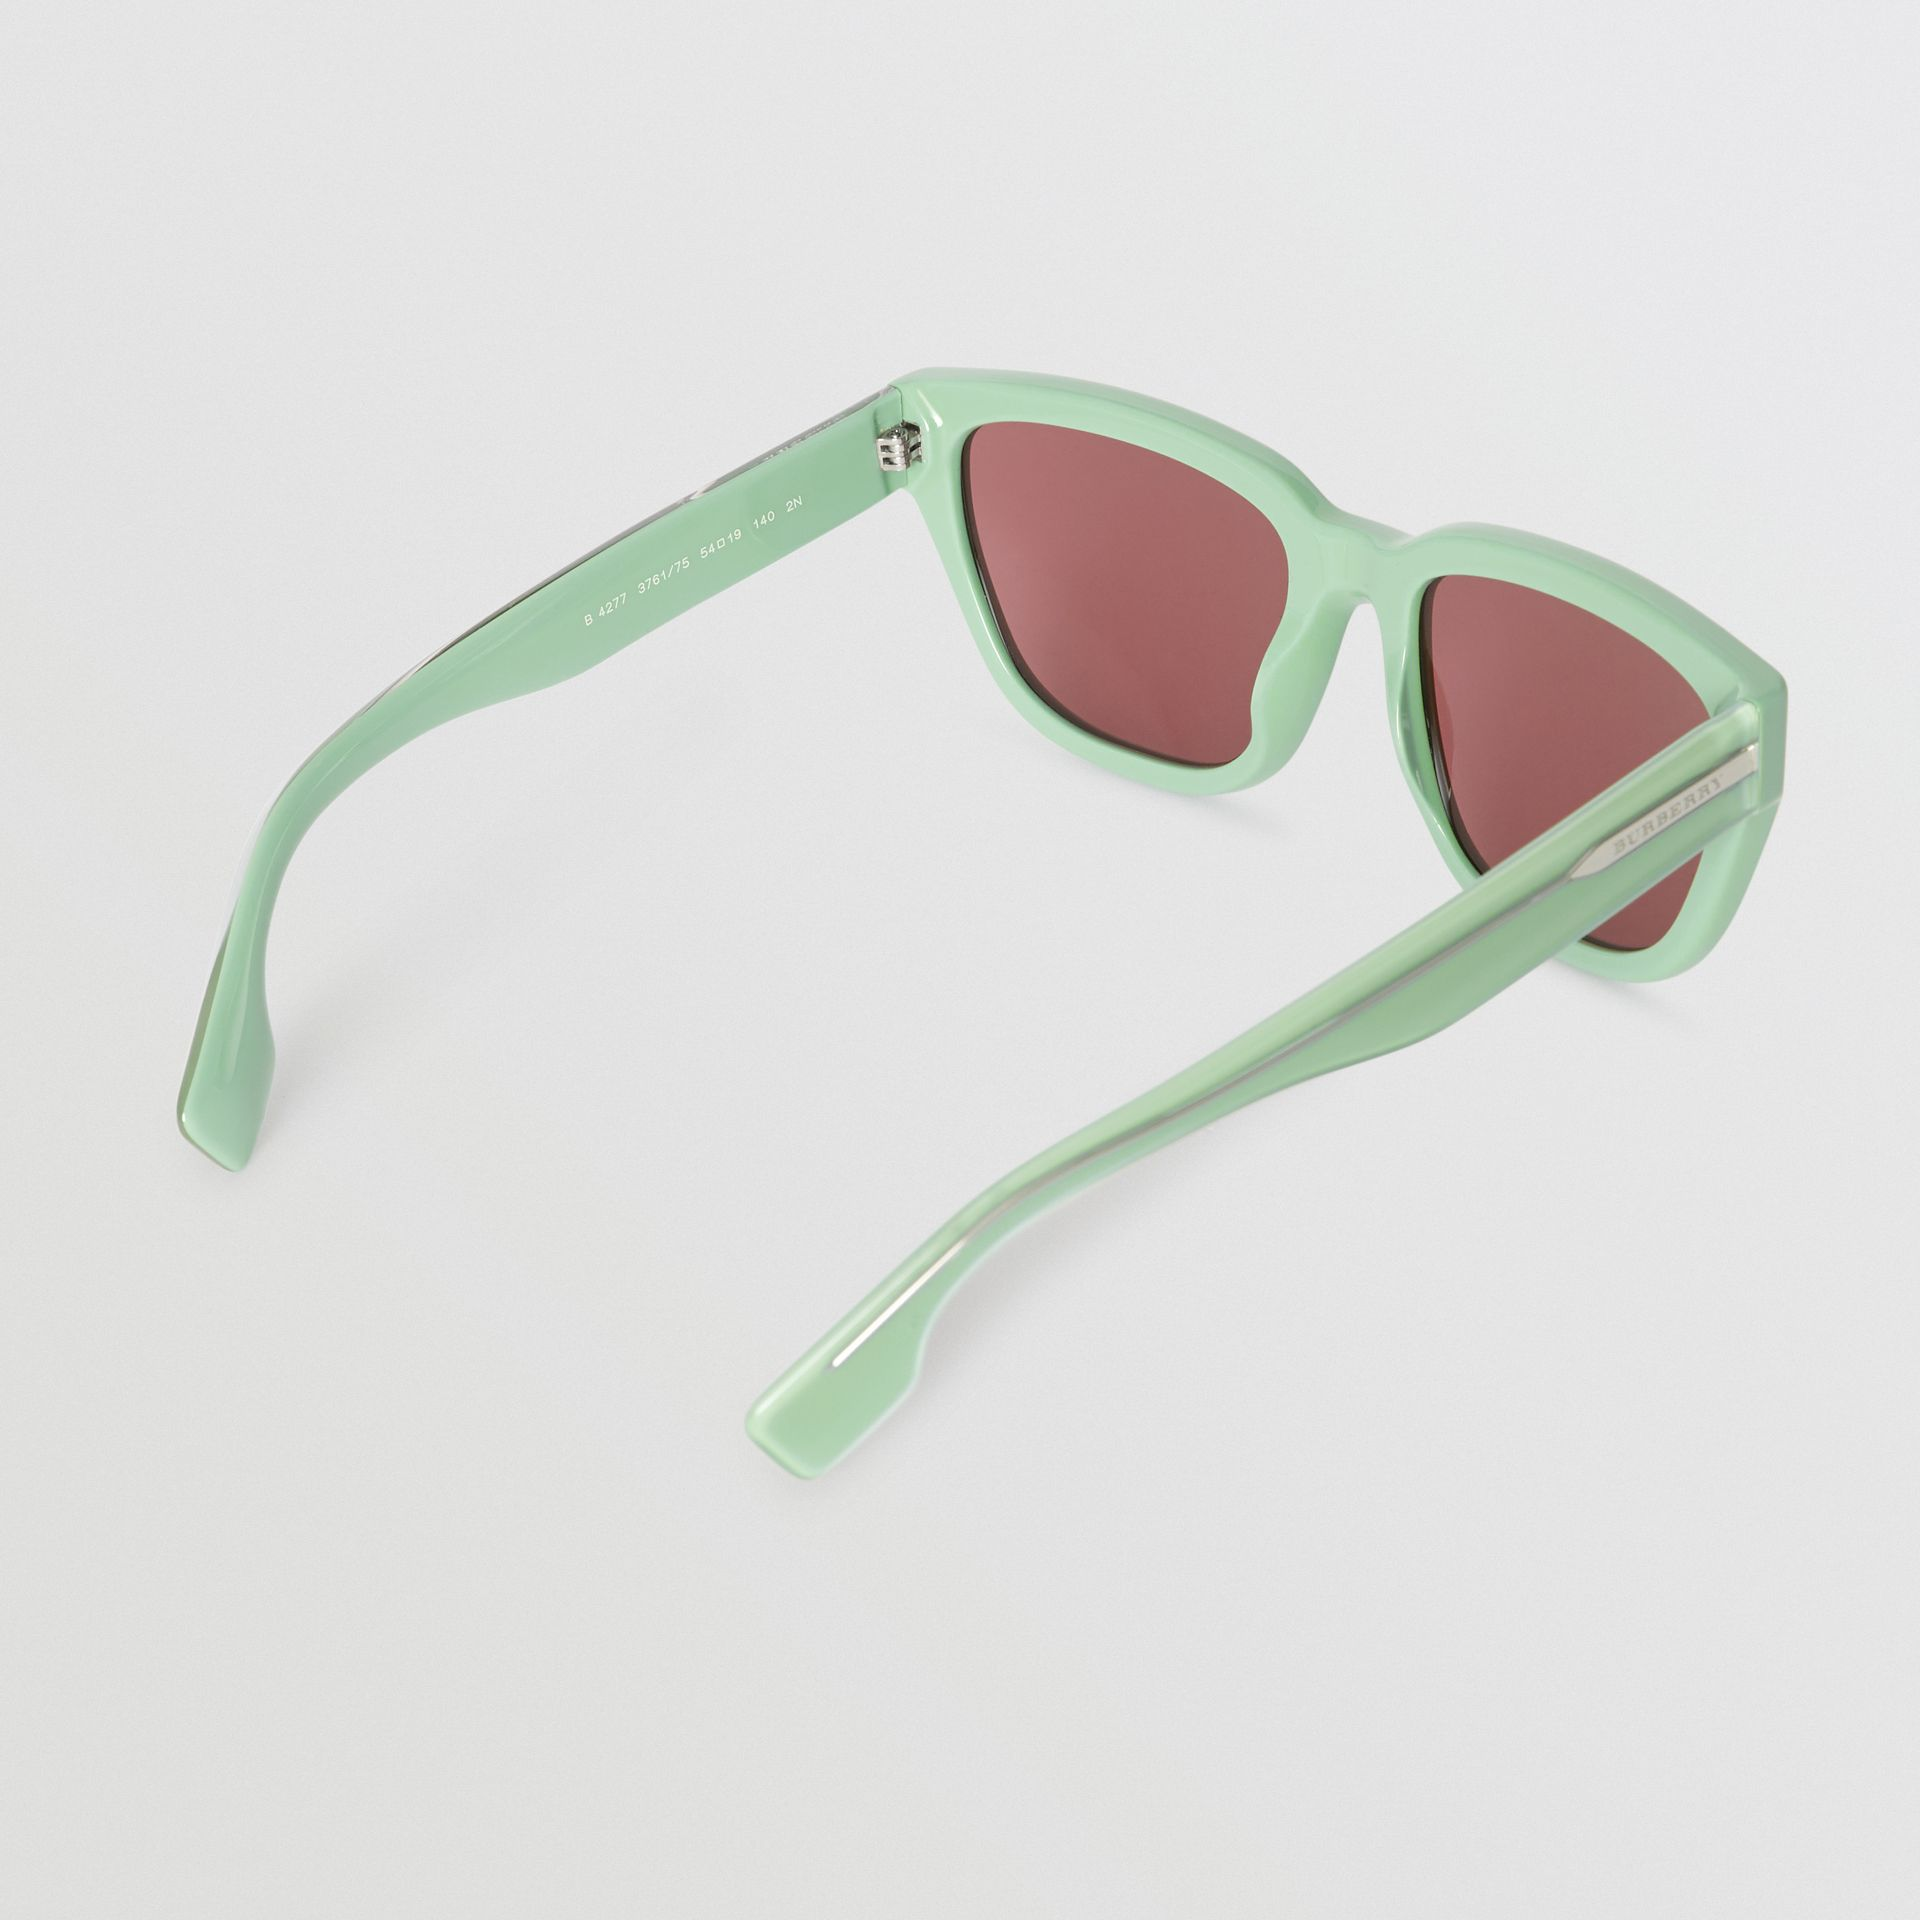 Square Frame Sunglasses in Mint Green - Women | Burberry United Kingdom - gallery image 4